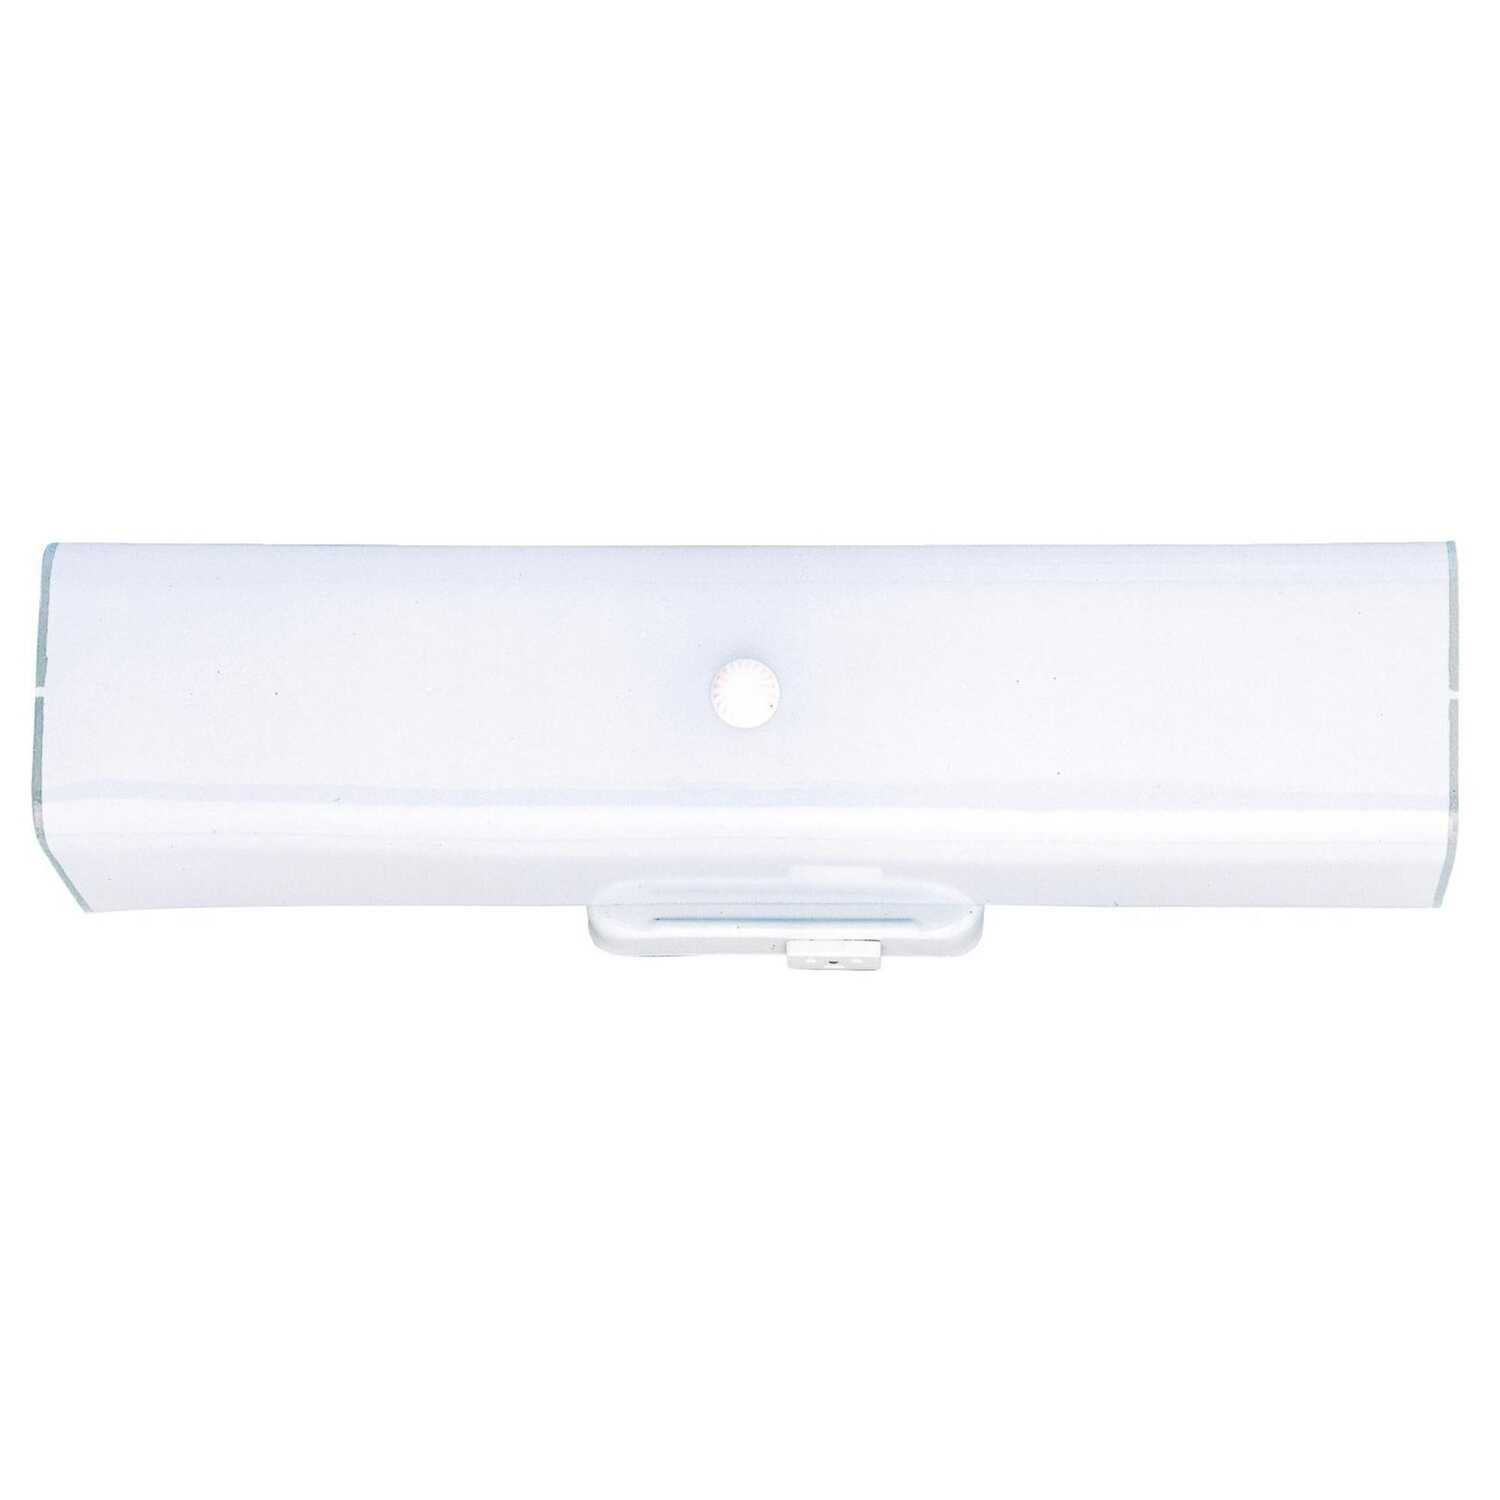 Westinghouse  White  2 lights Bathroom Channel Fixture  Wall Mount